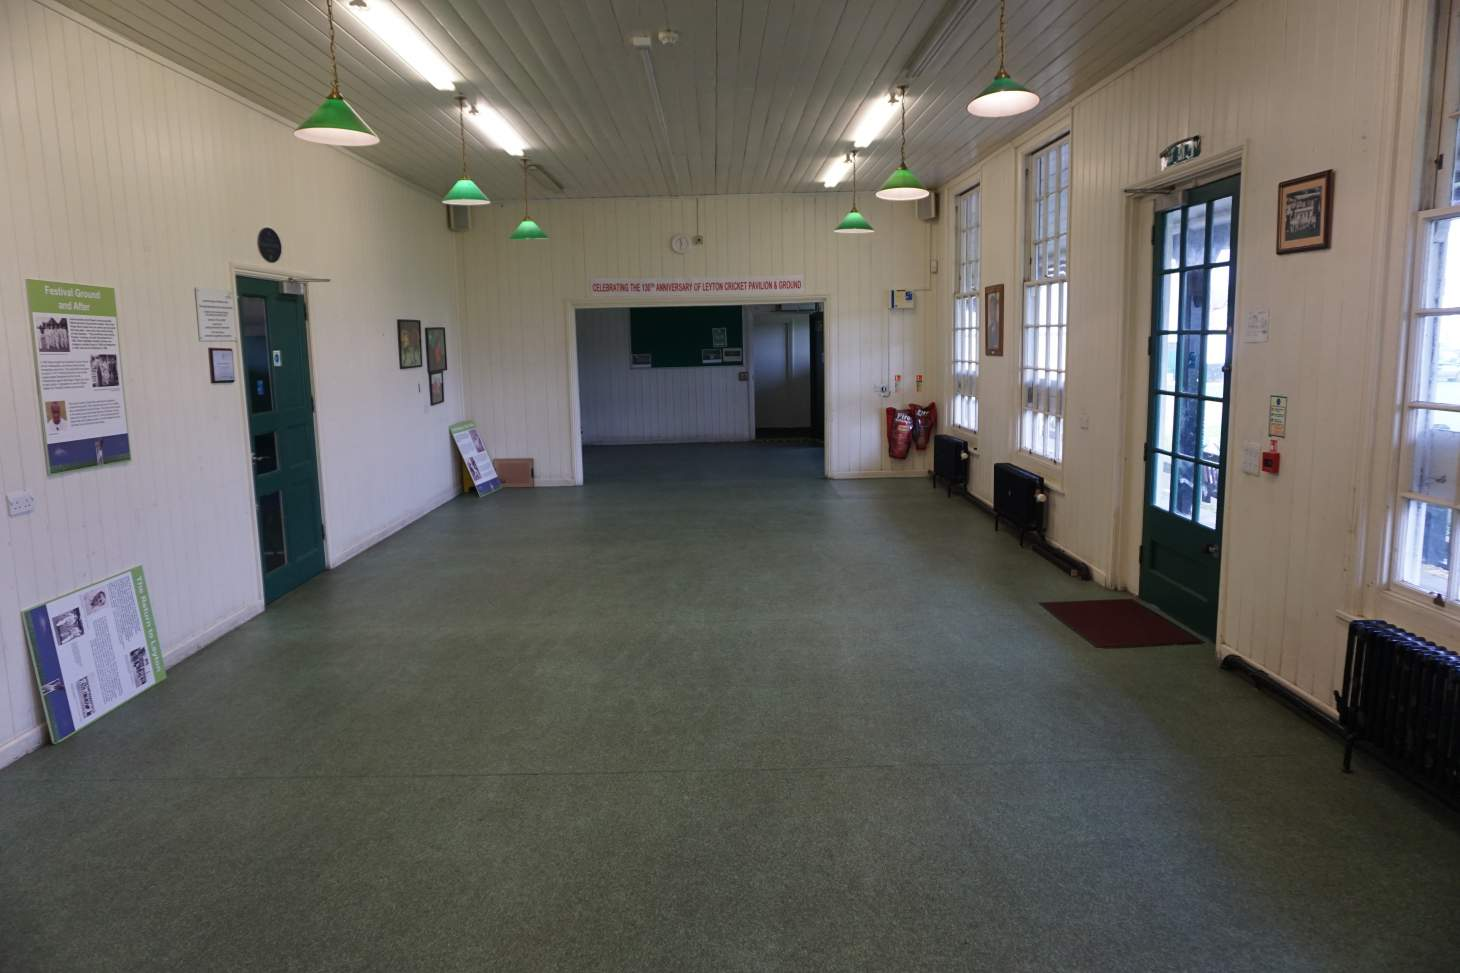 Leyton Sports Ground Meeting room space hire